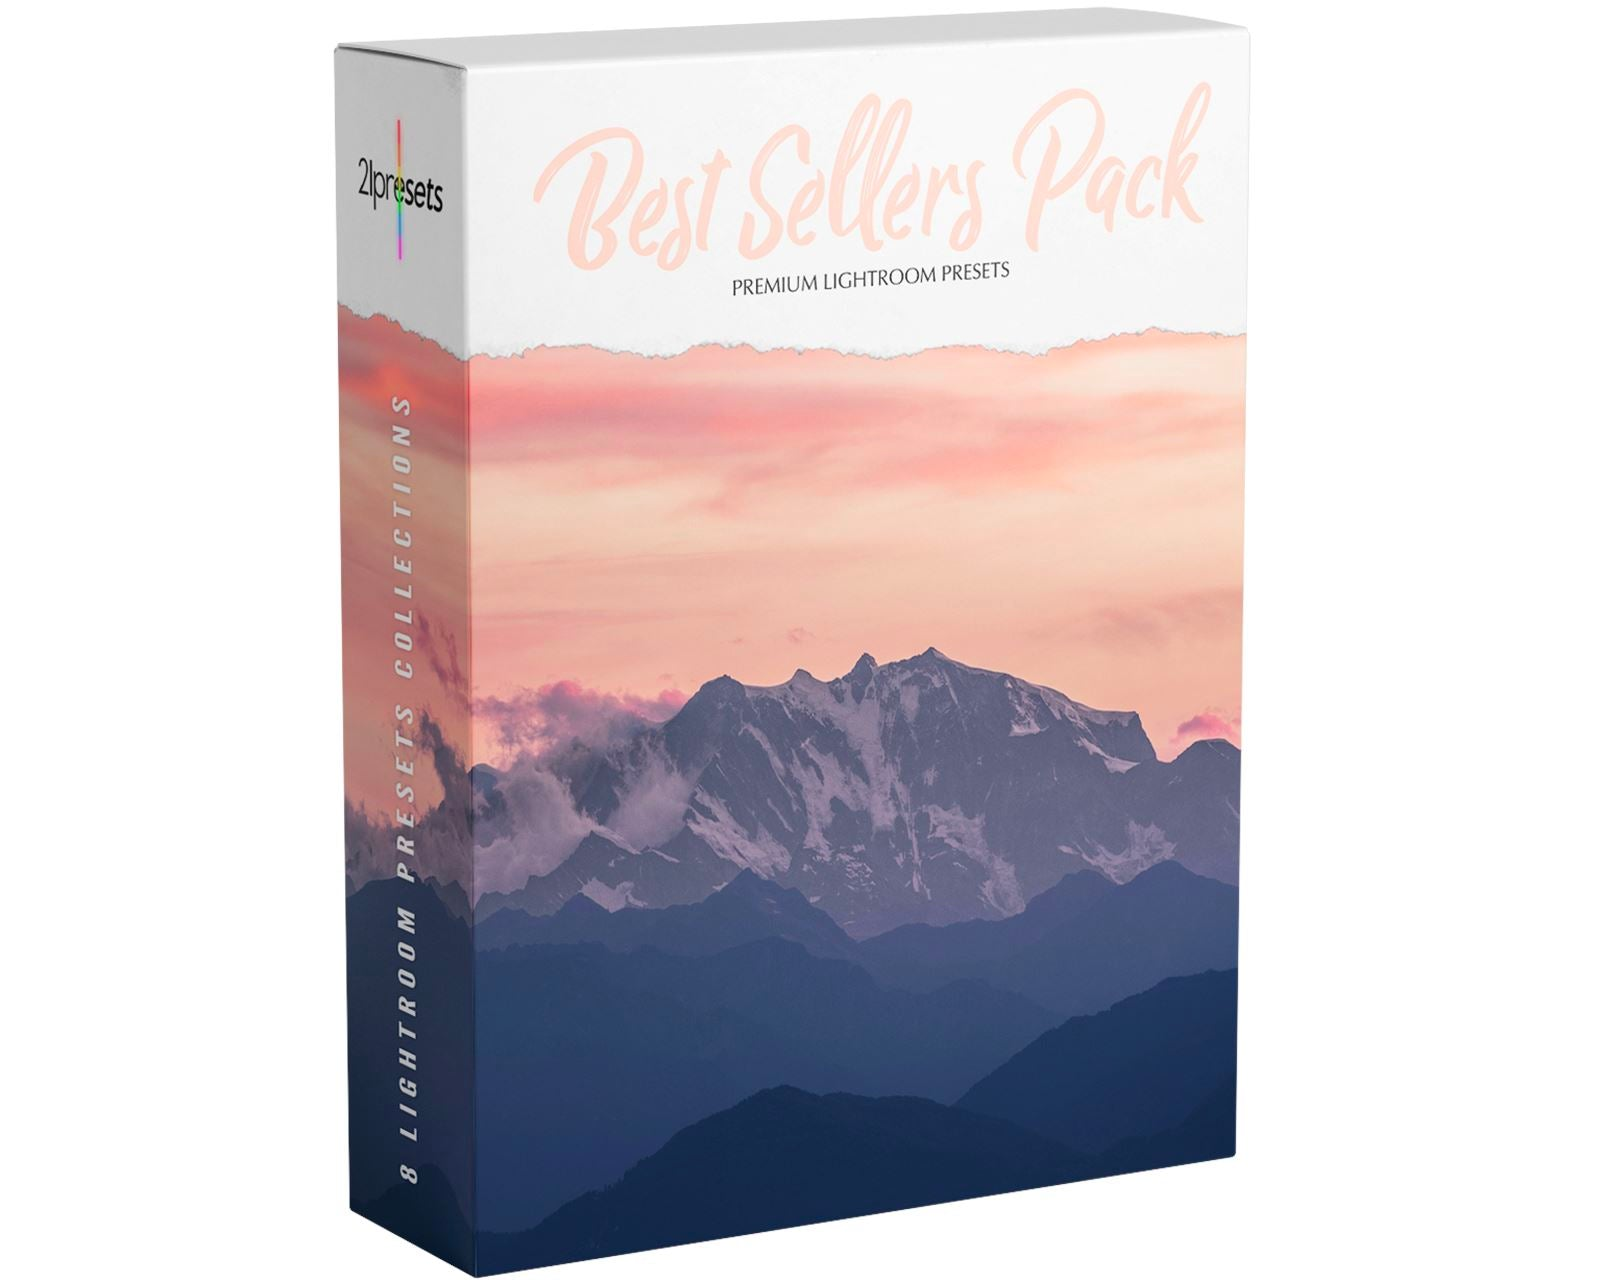 BEST SELLERS PACK PACKS 21presets®